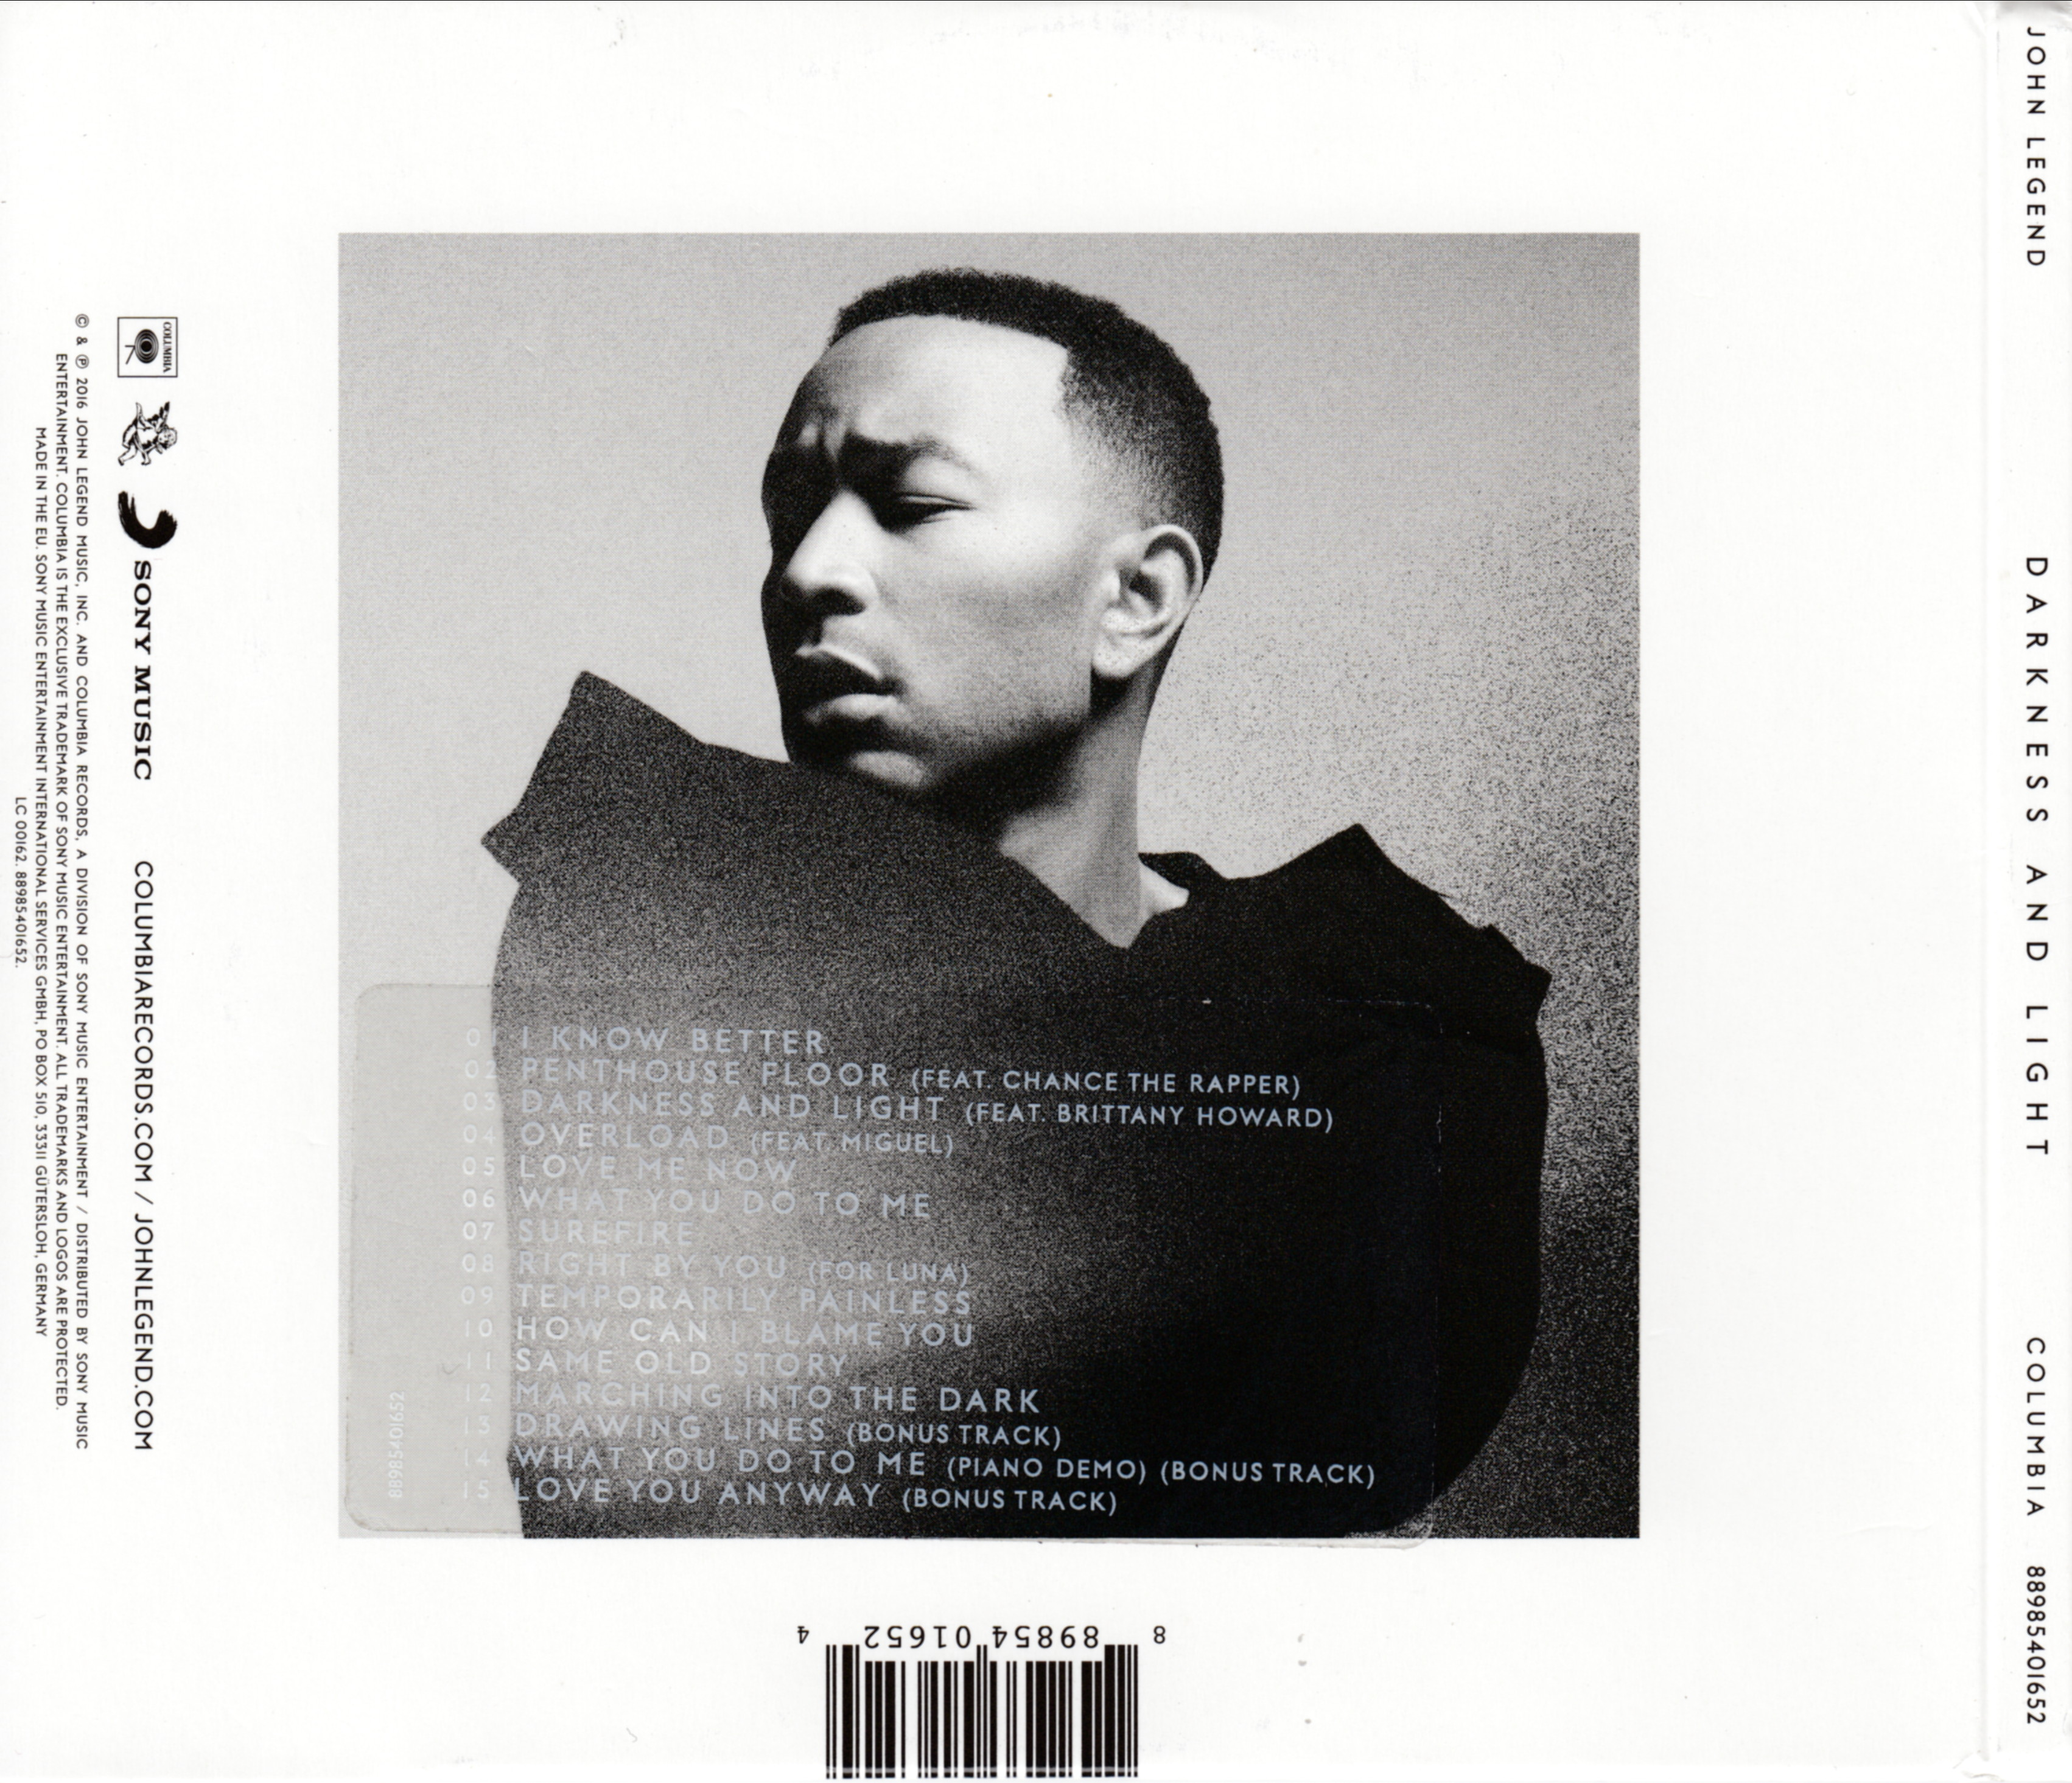 John Legend Darkness And Light Deluxe Edition back | CD ...